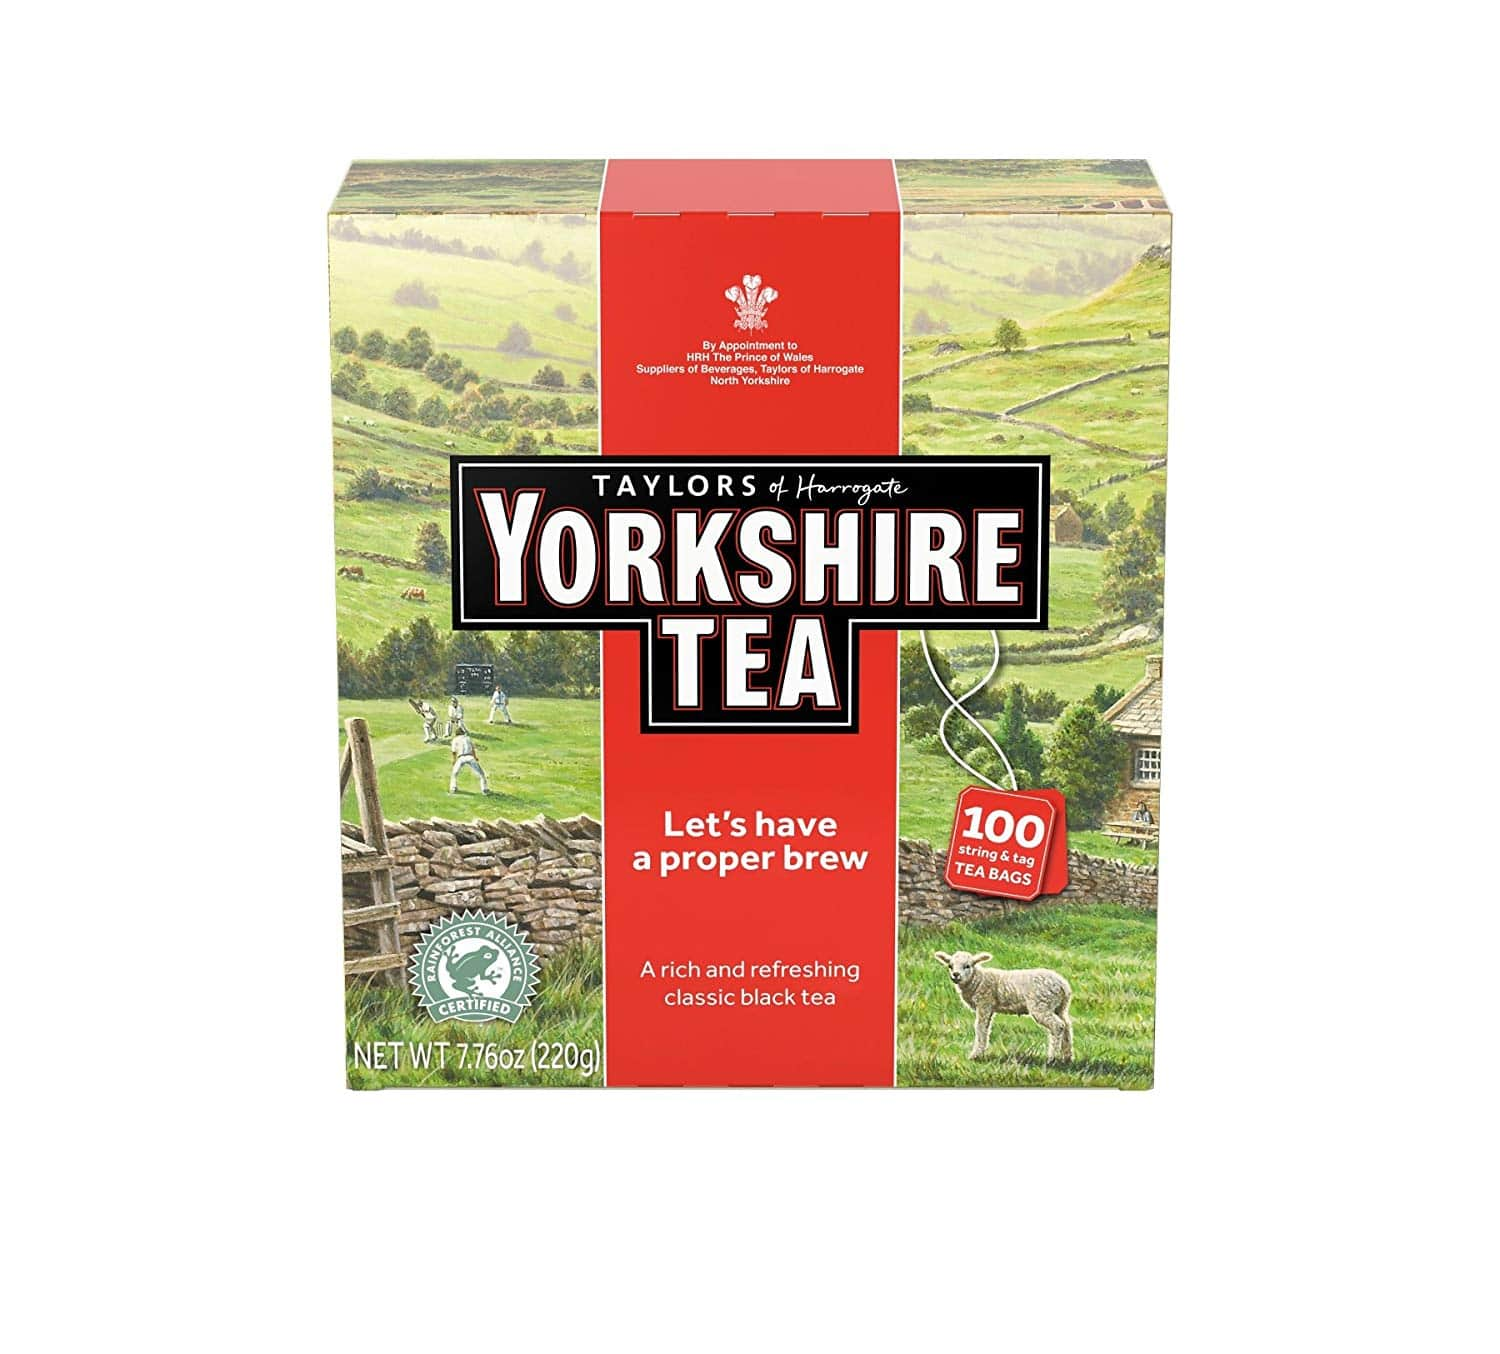 Taylors of Harrogate Yorkshire Red, 100 Teabags, Amazon $3.79